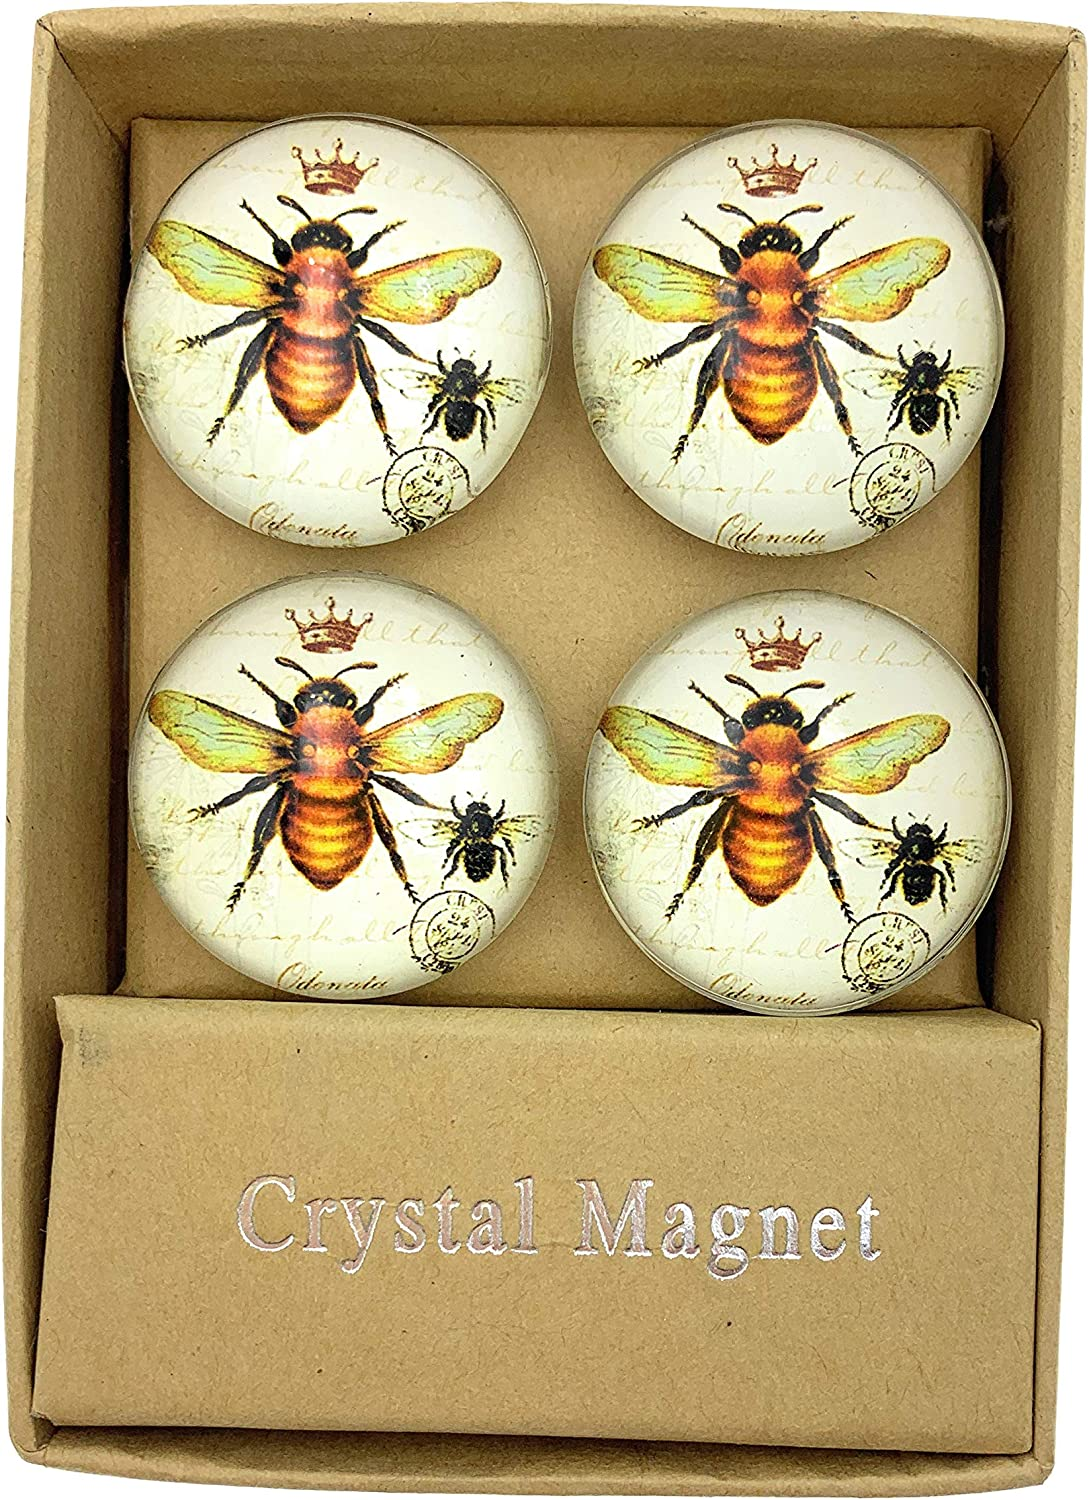 Value Arts Imperial French Honey Bee Glass Dome Magnets, Set of 4